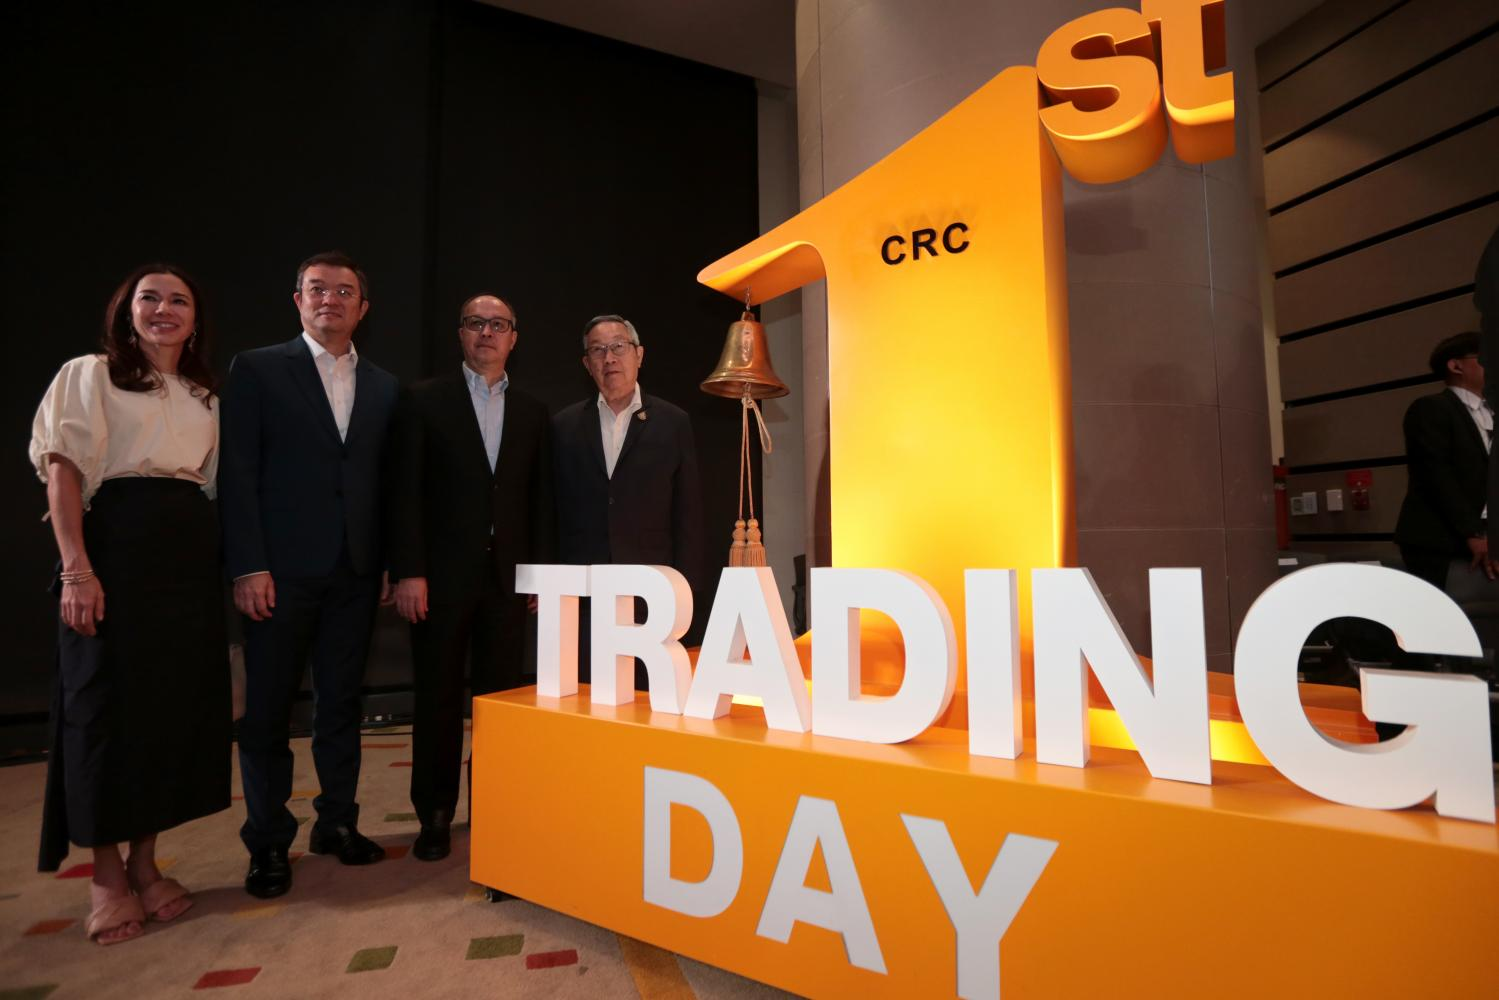 Suthikiati Chirathivat (right), vice-chairman of Central Retail Corporation, celebrates the first day of trade for Central Retail Corporation Plc, Thailand's biggest-ever equity IPO by market cap.Chanat Katanyu